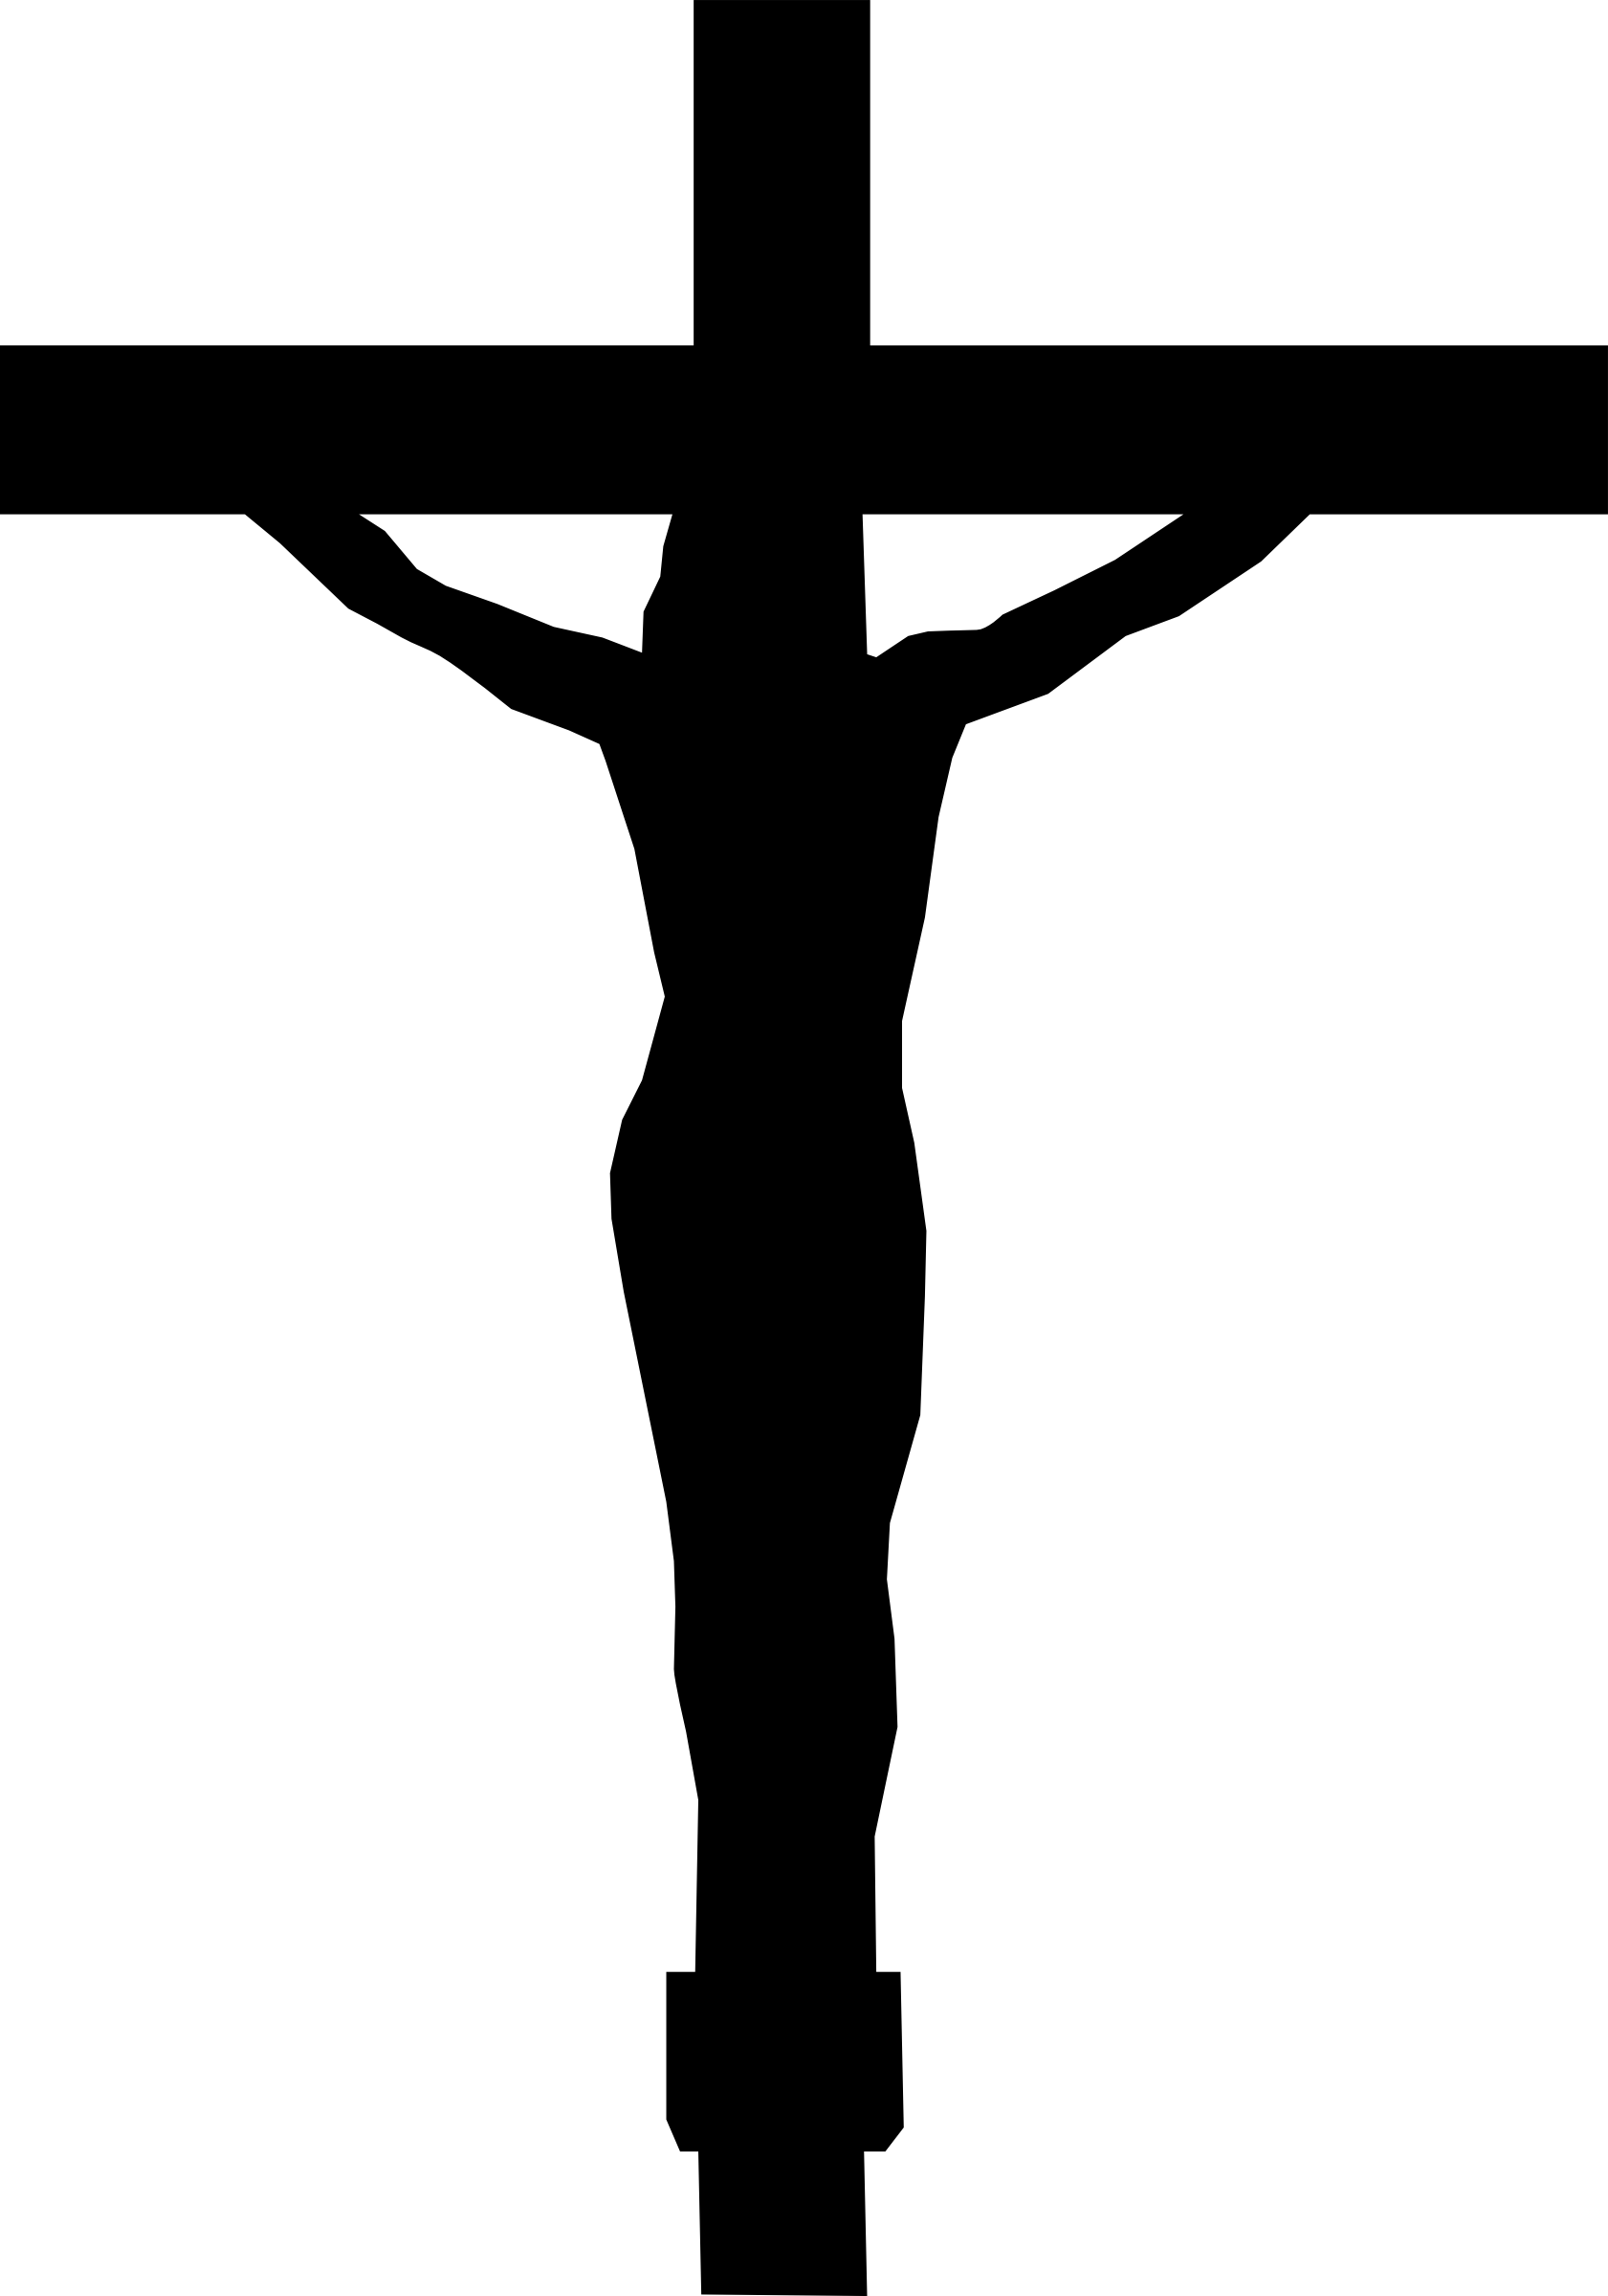 Jesus cross png. On the transparent images